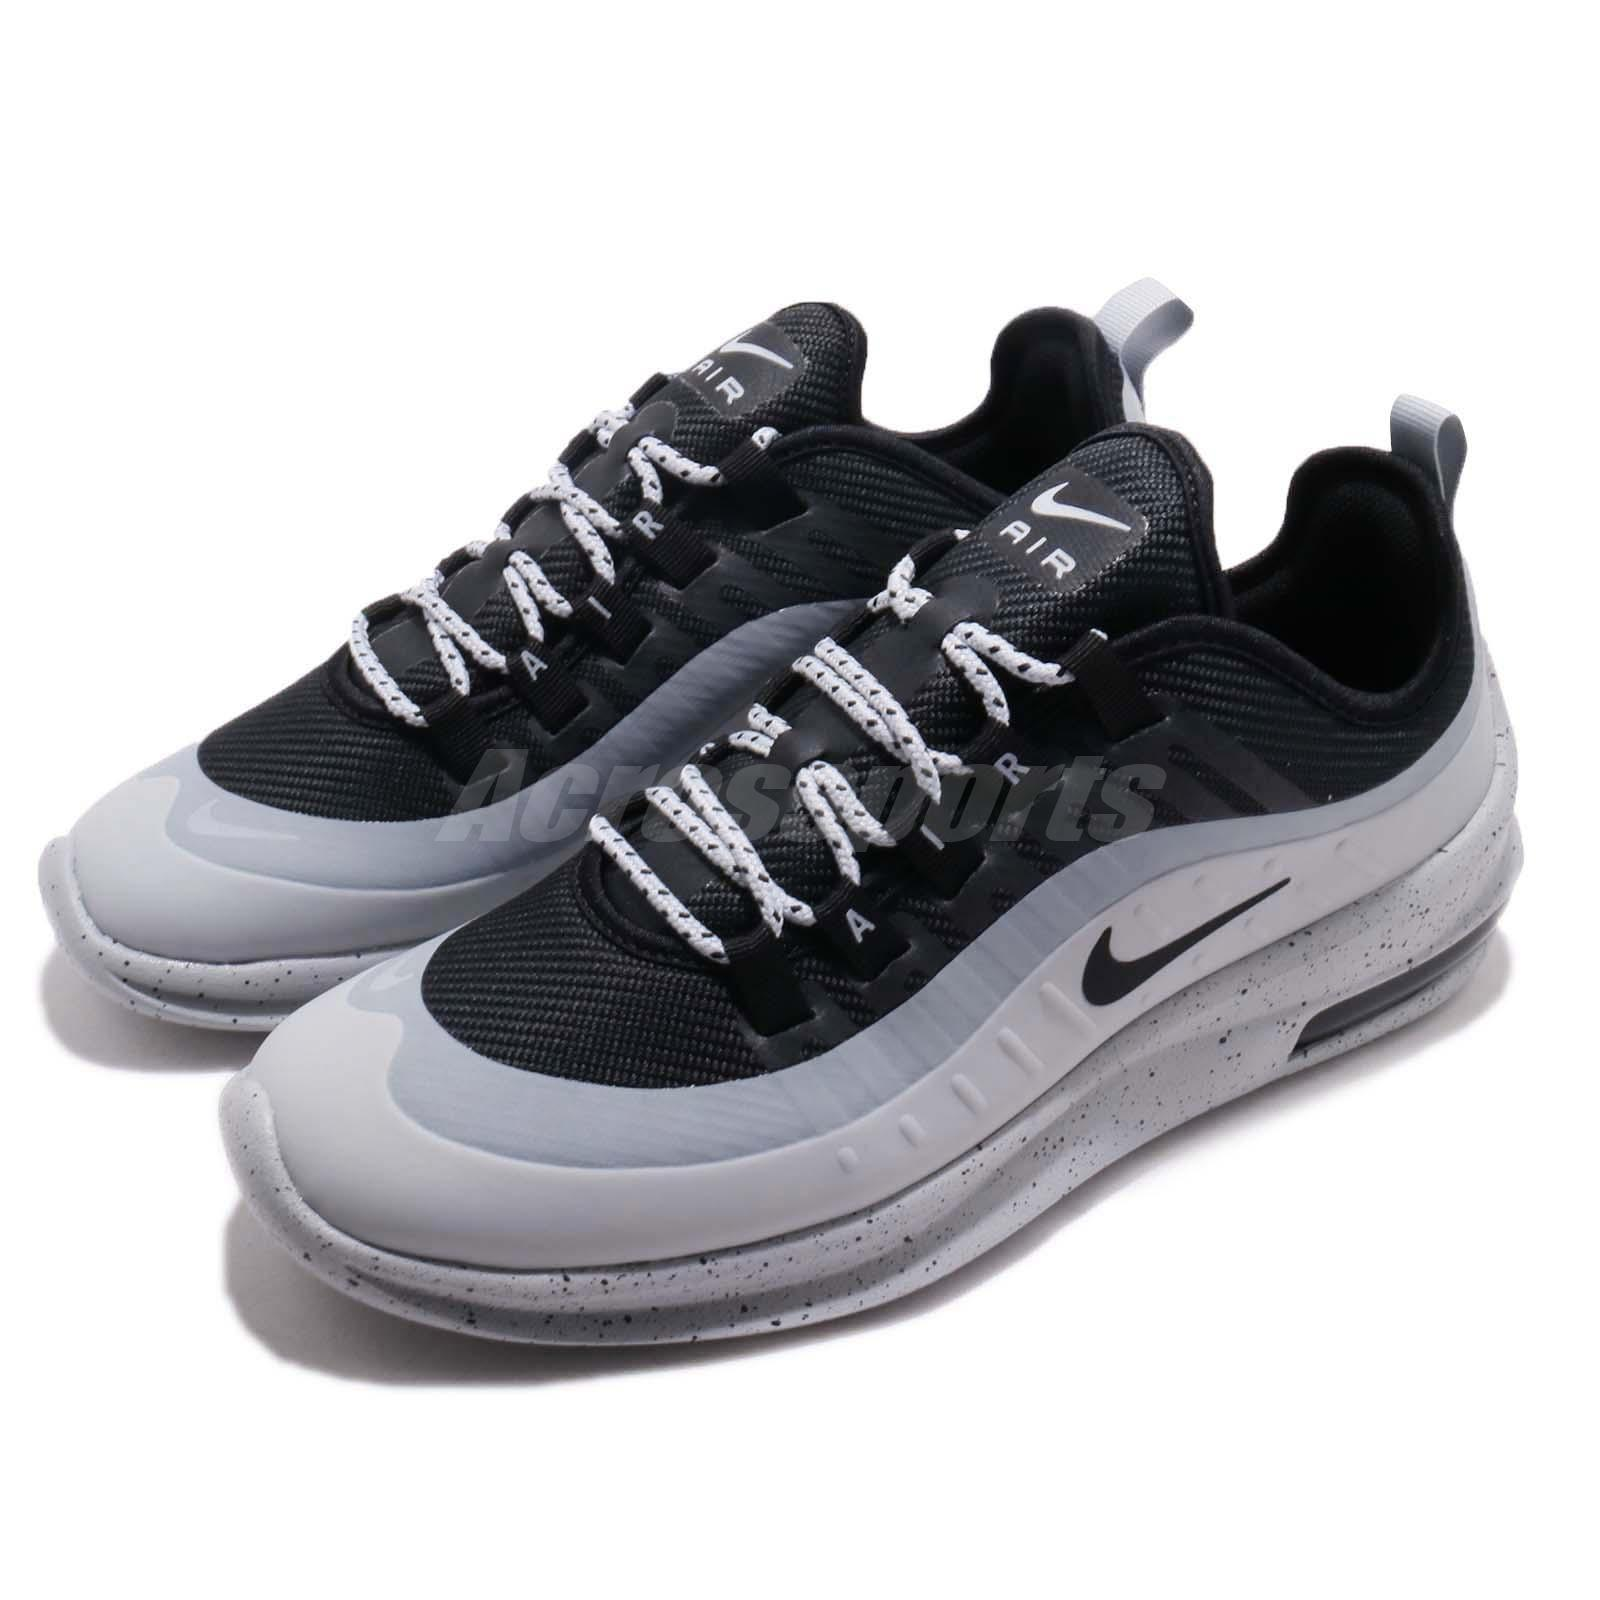 Details about Nike Air Max Axis PREM Black Grey Men Running Casual Shoes Sneakers AA2148 003